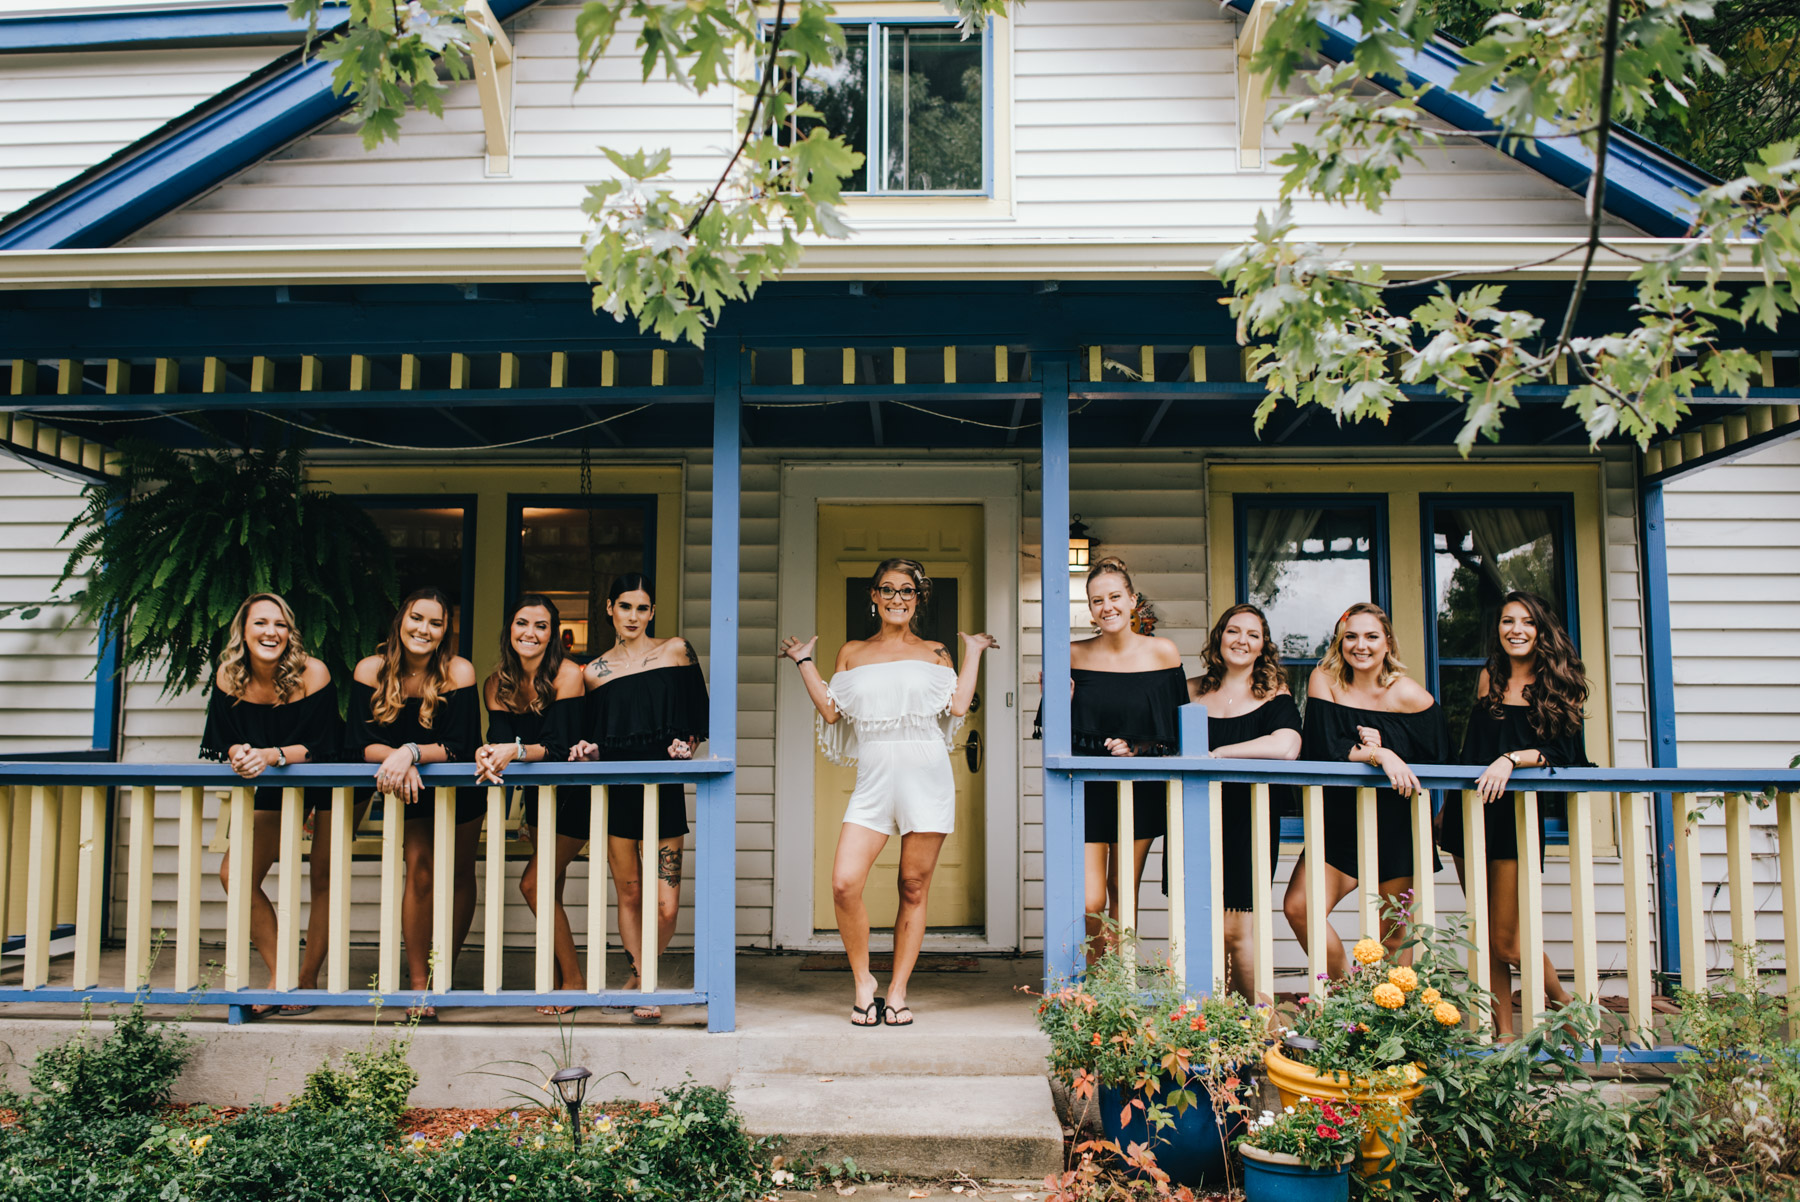 Alexa and her bridesmaids on the porch at the Kelly Urban Farm. The blue and yellow porch is a fun spot to take all kinds of photos, including these of the girls while they were getting ready. I love the realness of how Alexa still has curlers in her hair, and the girls are all still in the black off shoulder rompers Alexa gave each girl as a bridesmaids gift.